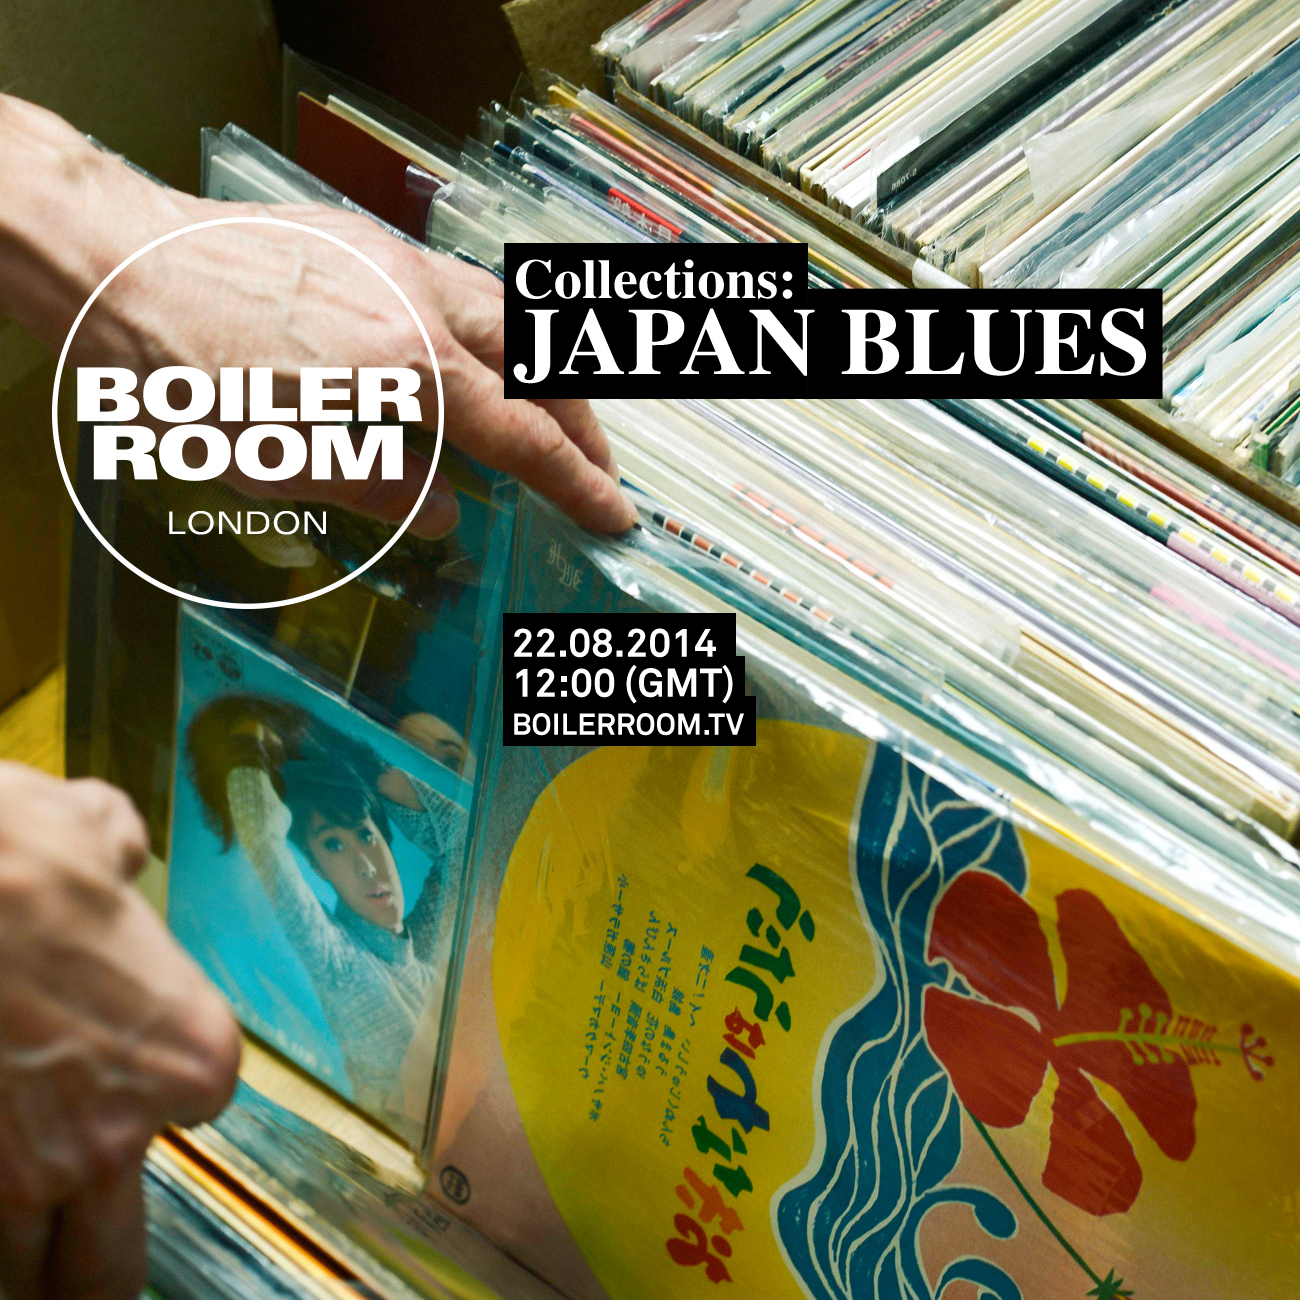 JAPAN_BLUES_BOILER_ROOM_FLYER_TEMPLATE-1